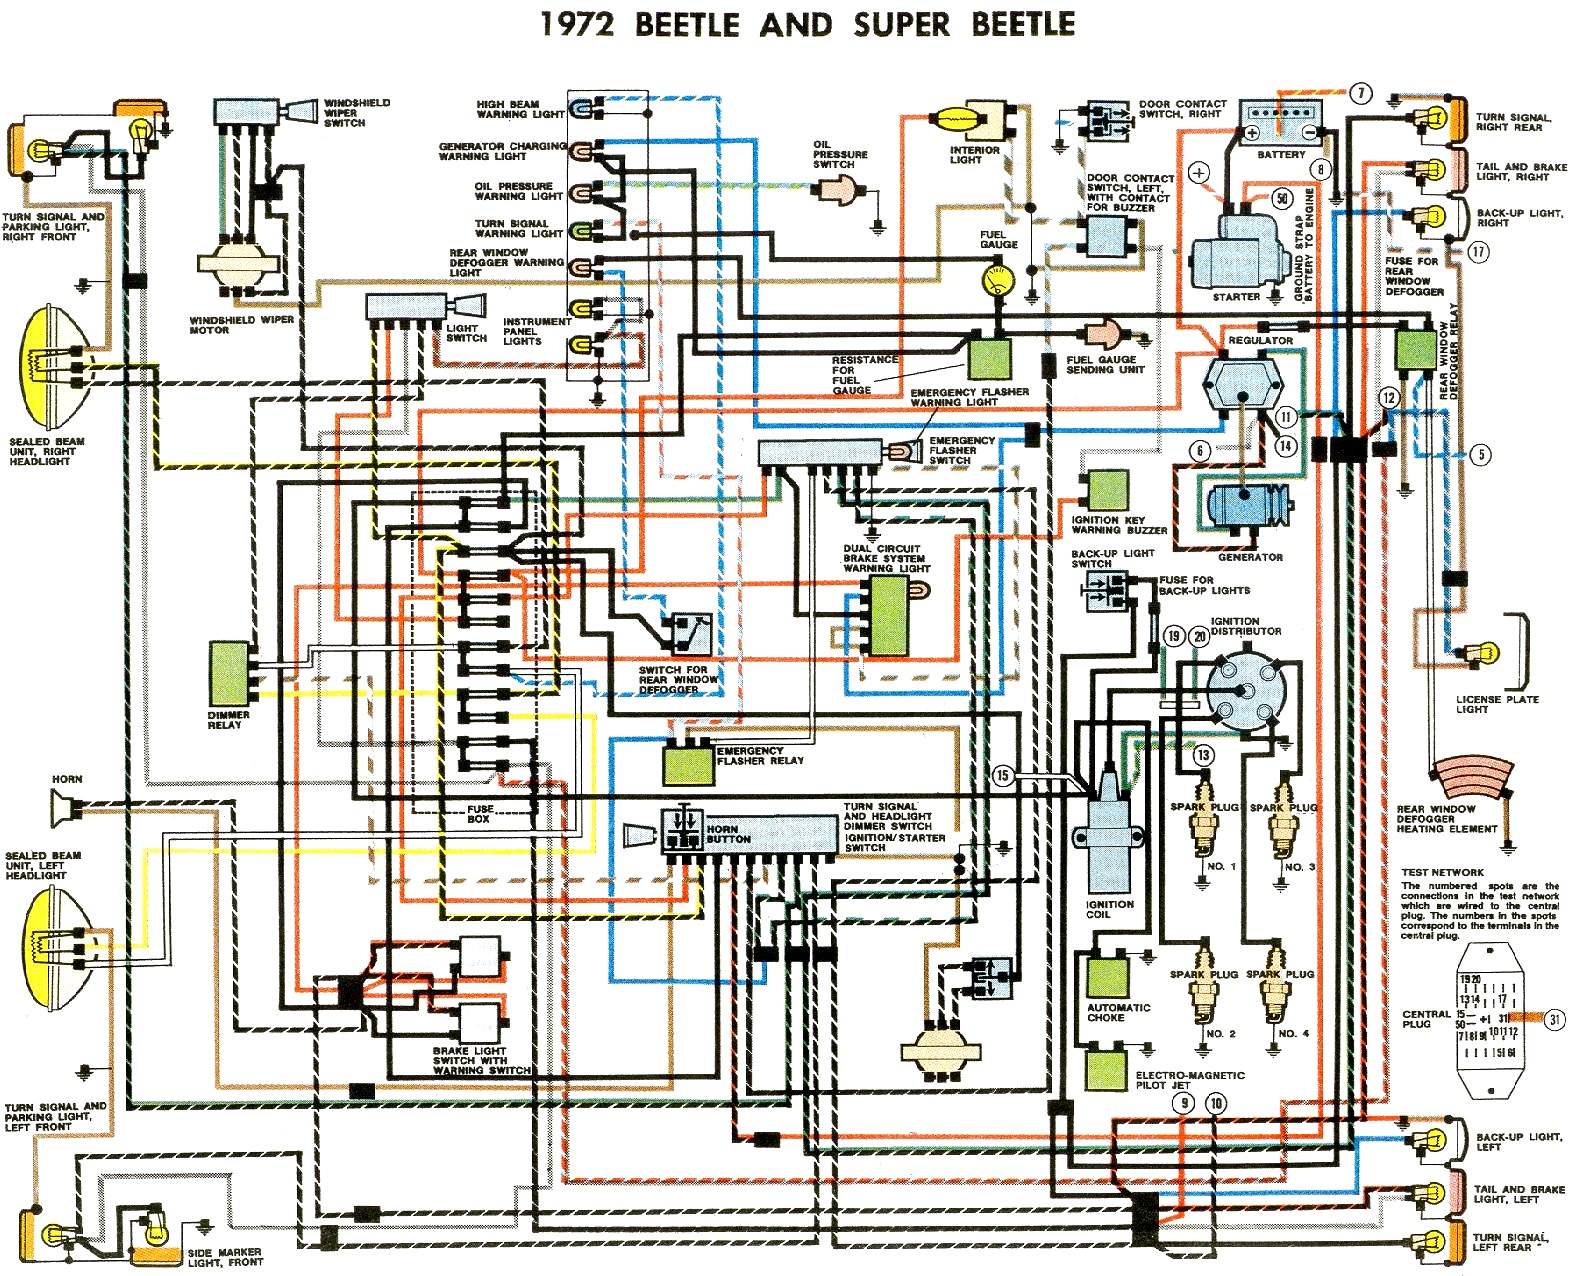 bug_72 vw mk1 wiring diagram 56 vw bug wiring diagram \u2022 wiring diagrams vw buggy wiring diagram at soozxer.org